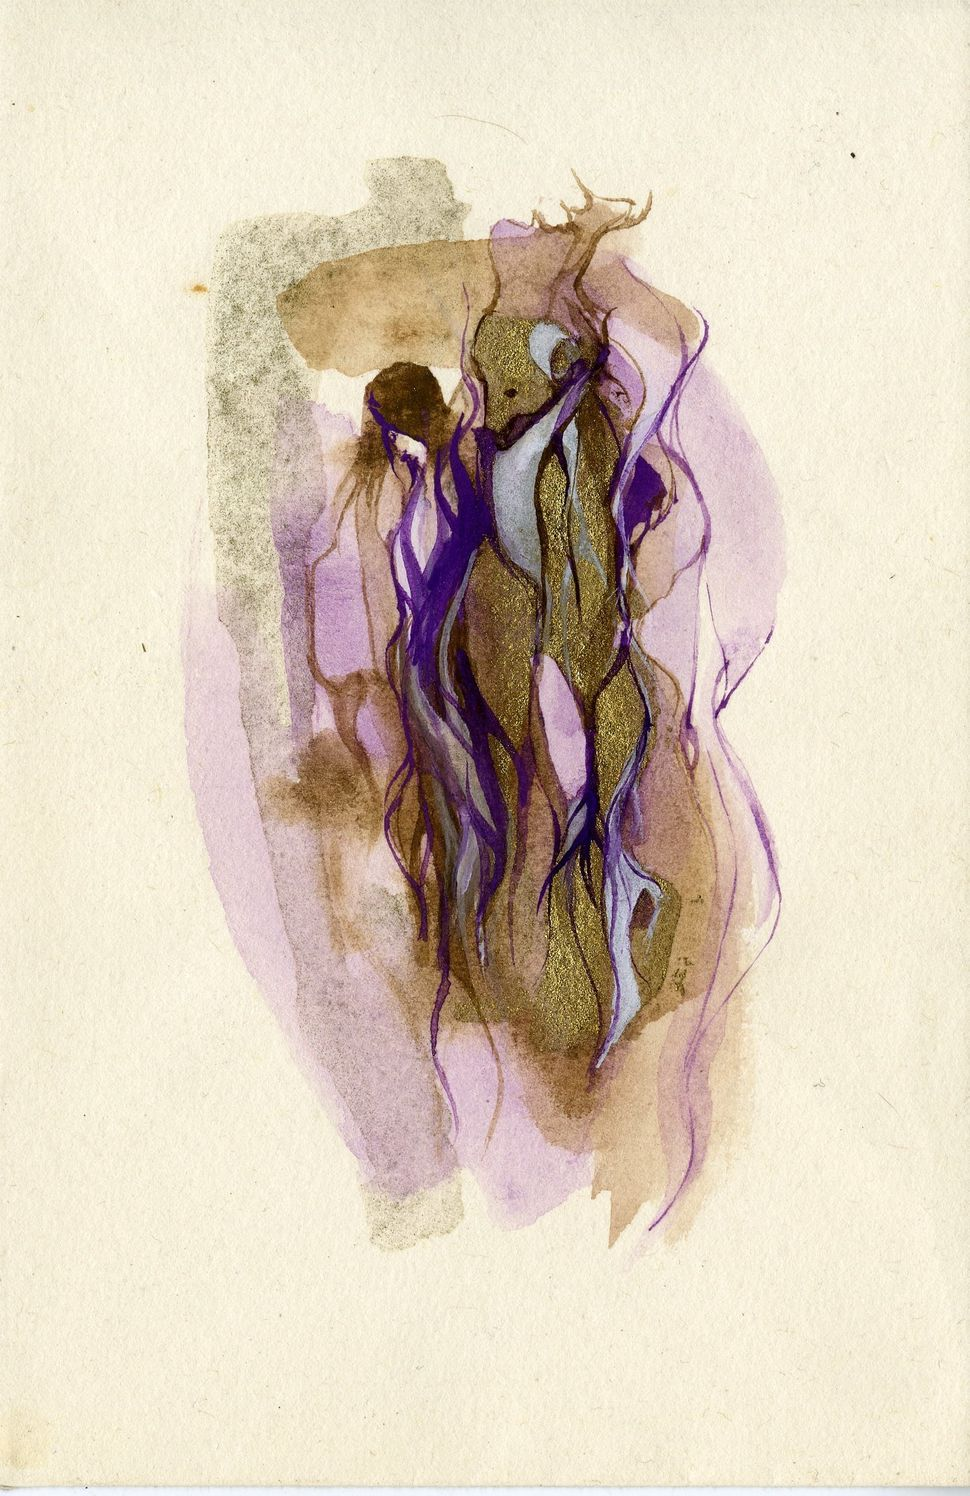 Untitled (from Lions Path series) n.d. watercolor and gold on paper 5 x 7 inches (image)